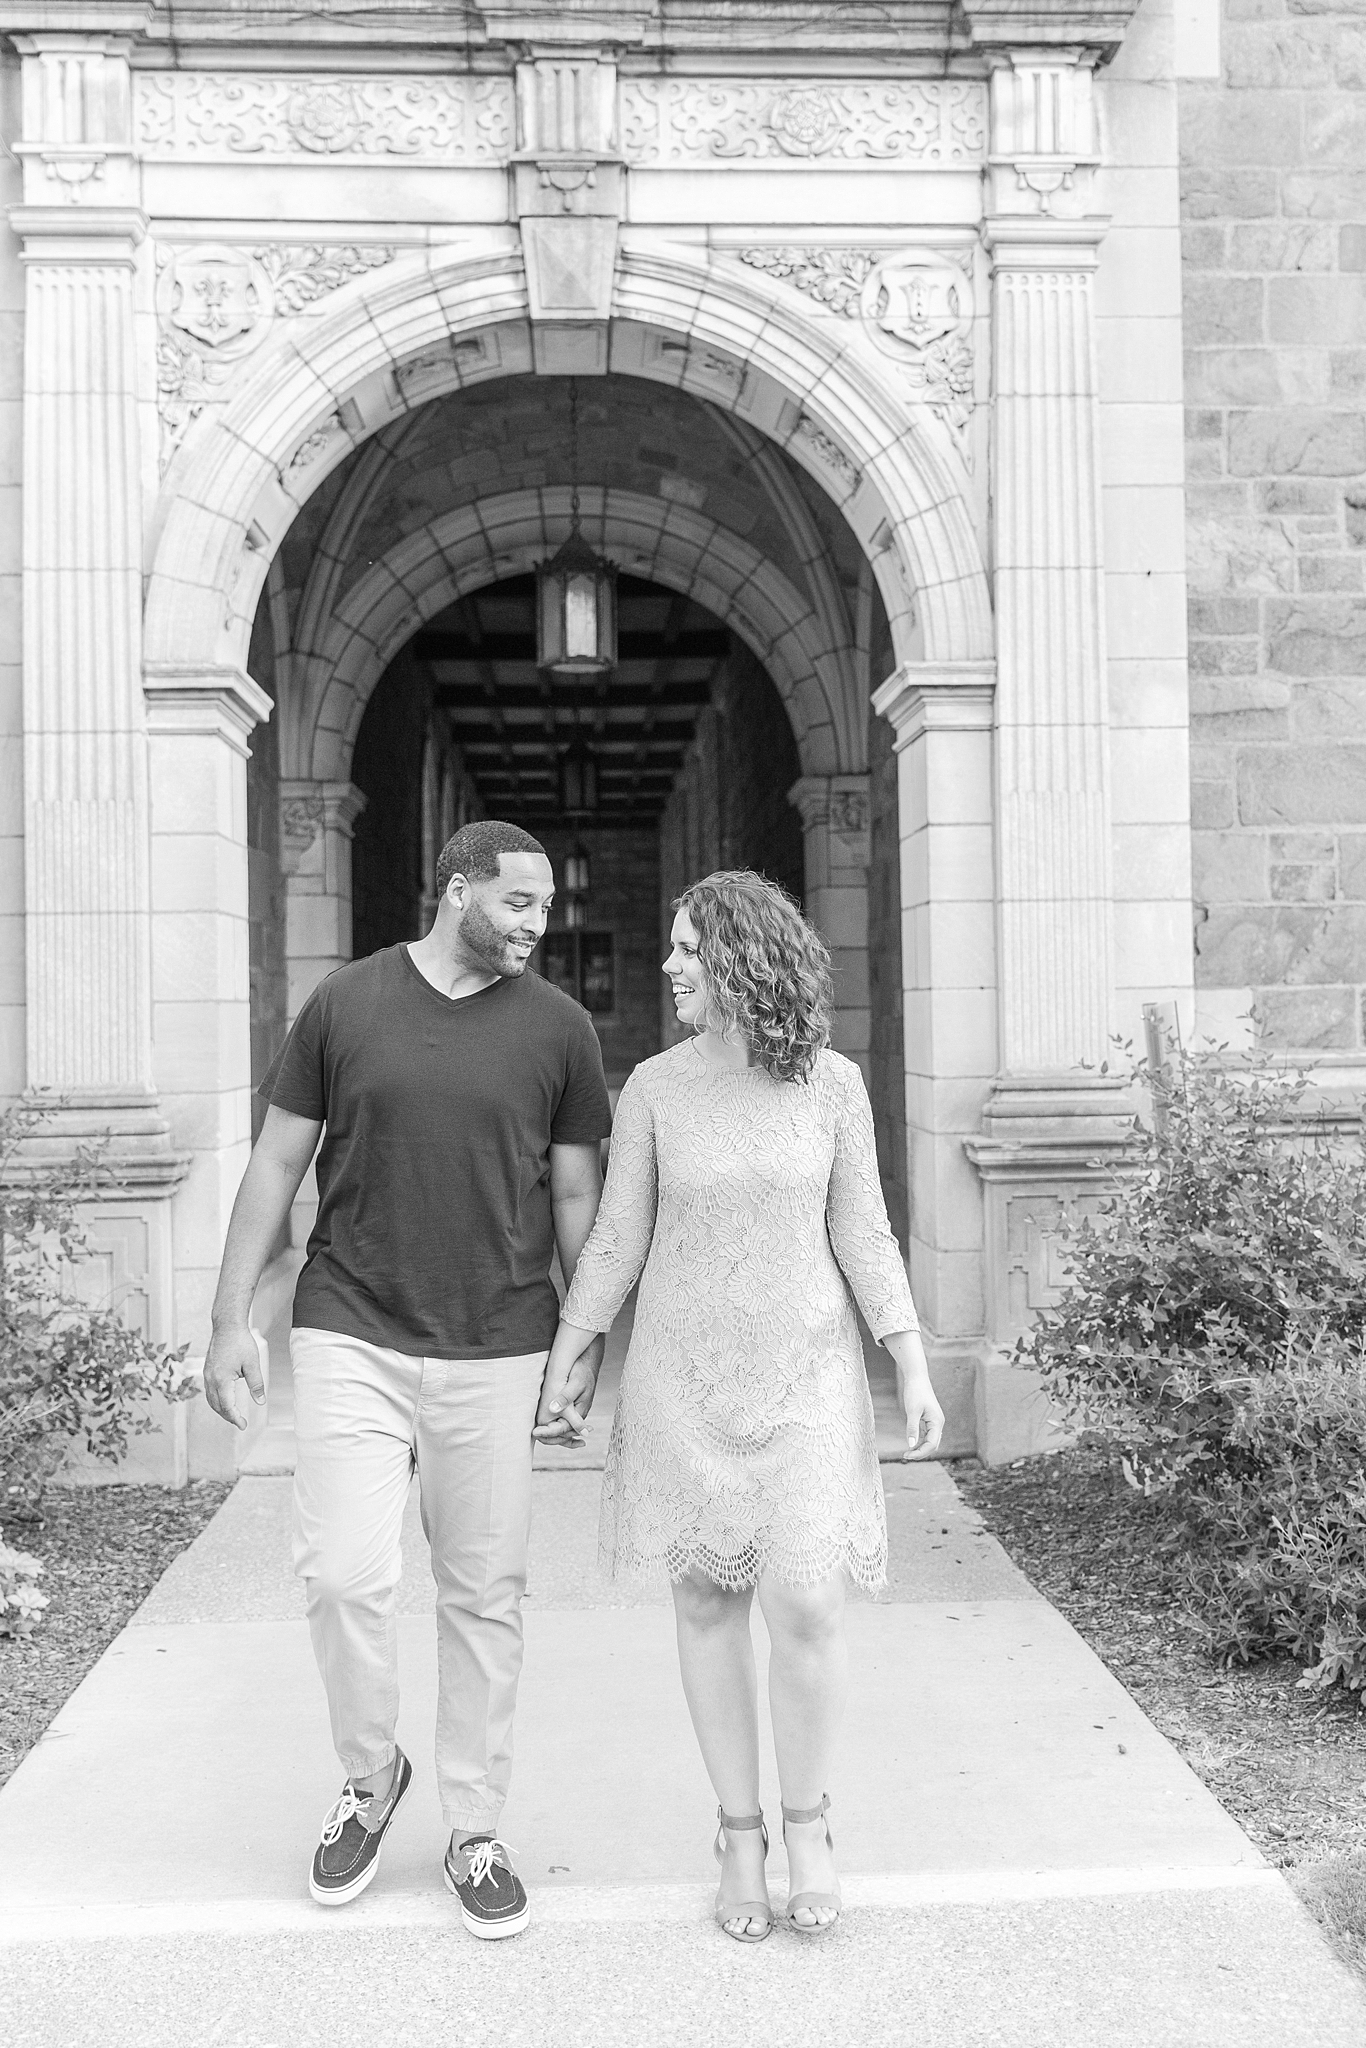 joyful-college-campus-engagement-photography-at-university-of-michigan-in-ann-arbor-mi-by-courtney-carolyn-photography_0017.jpg